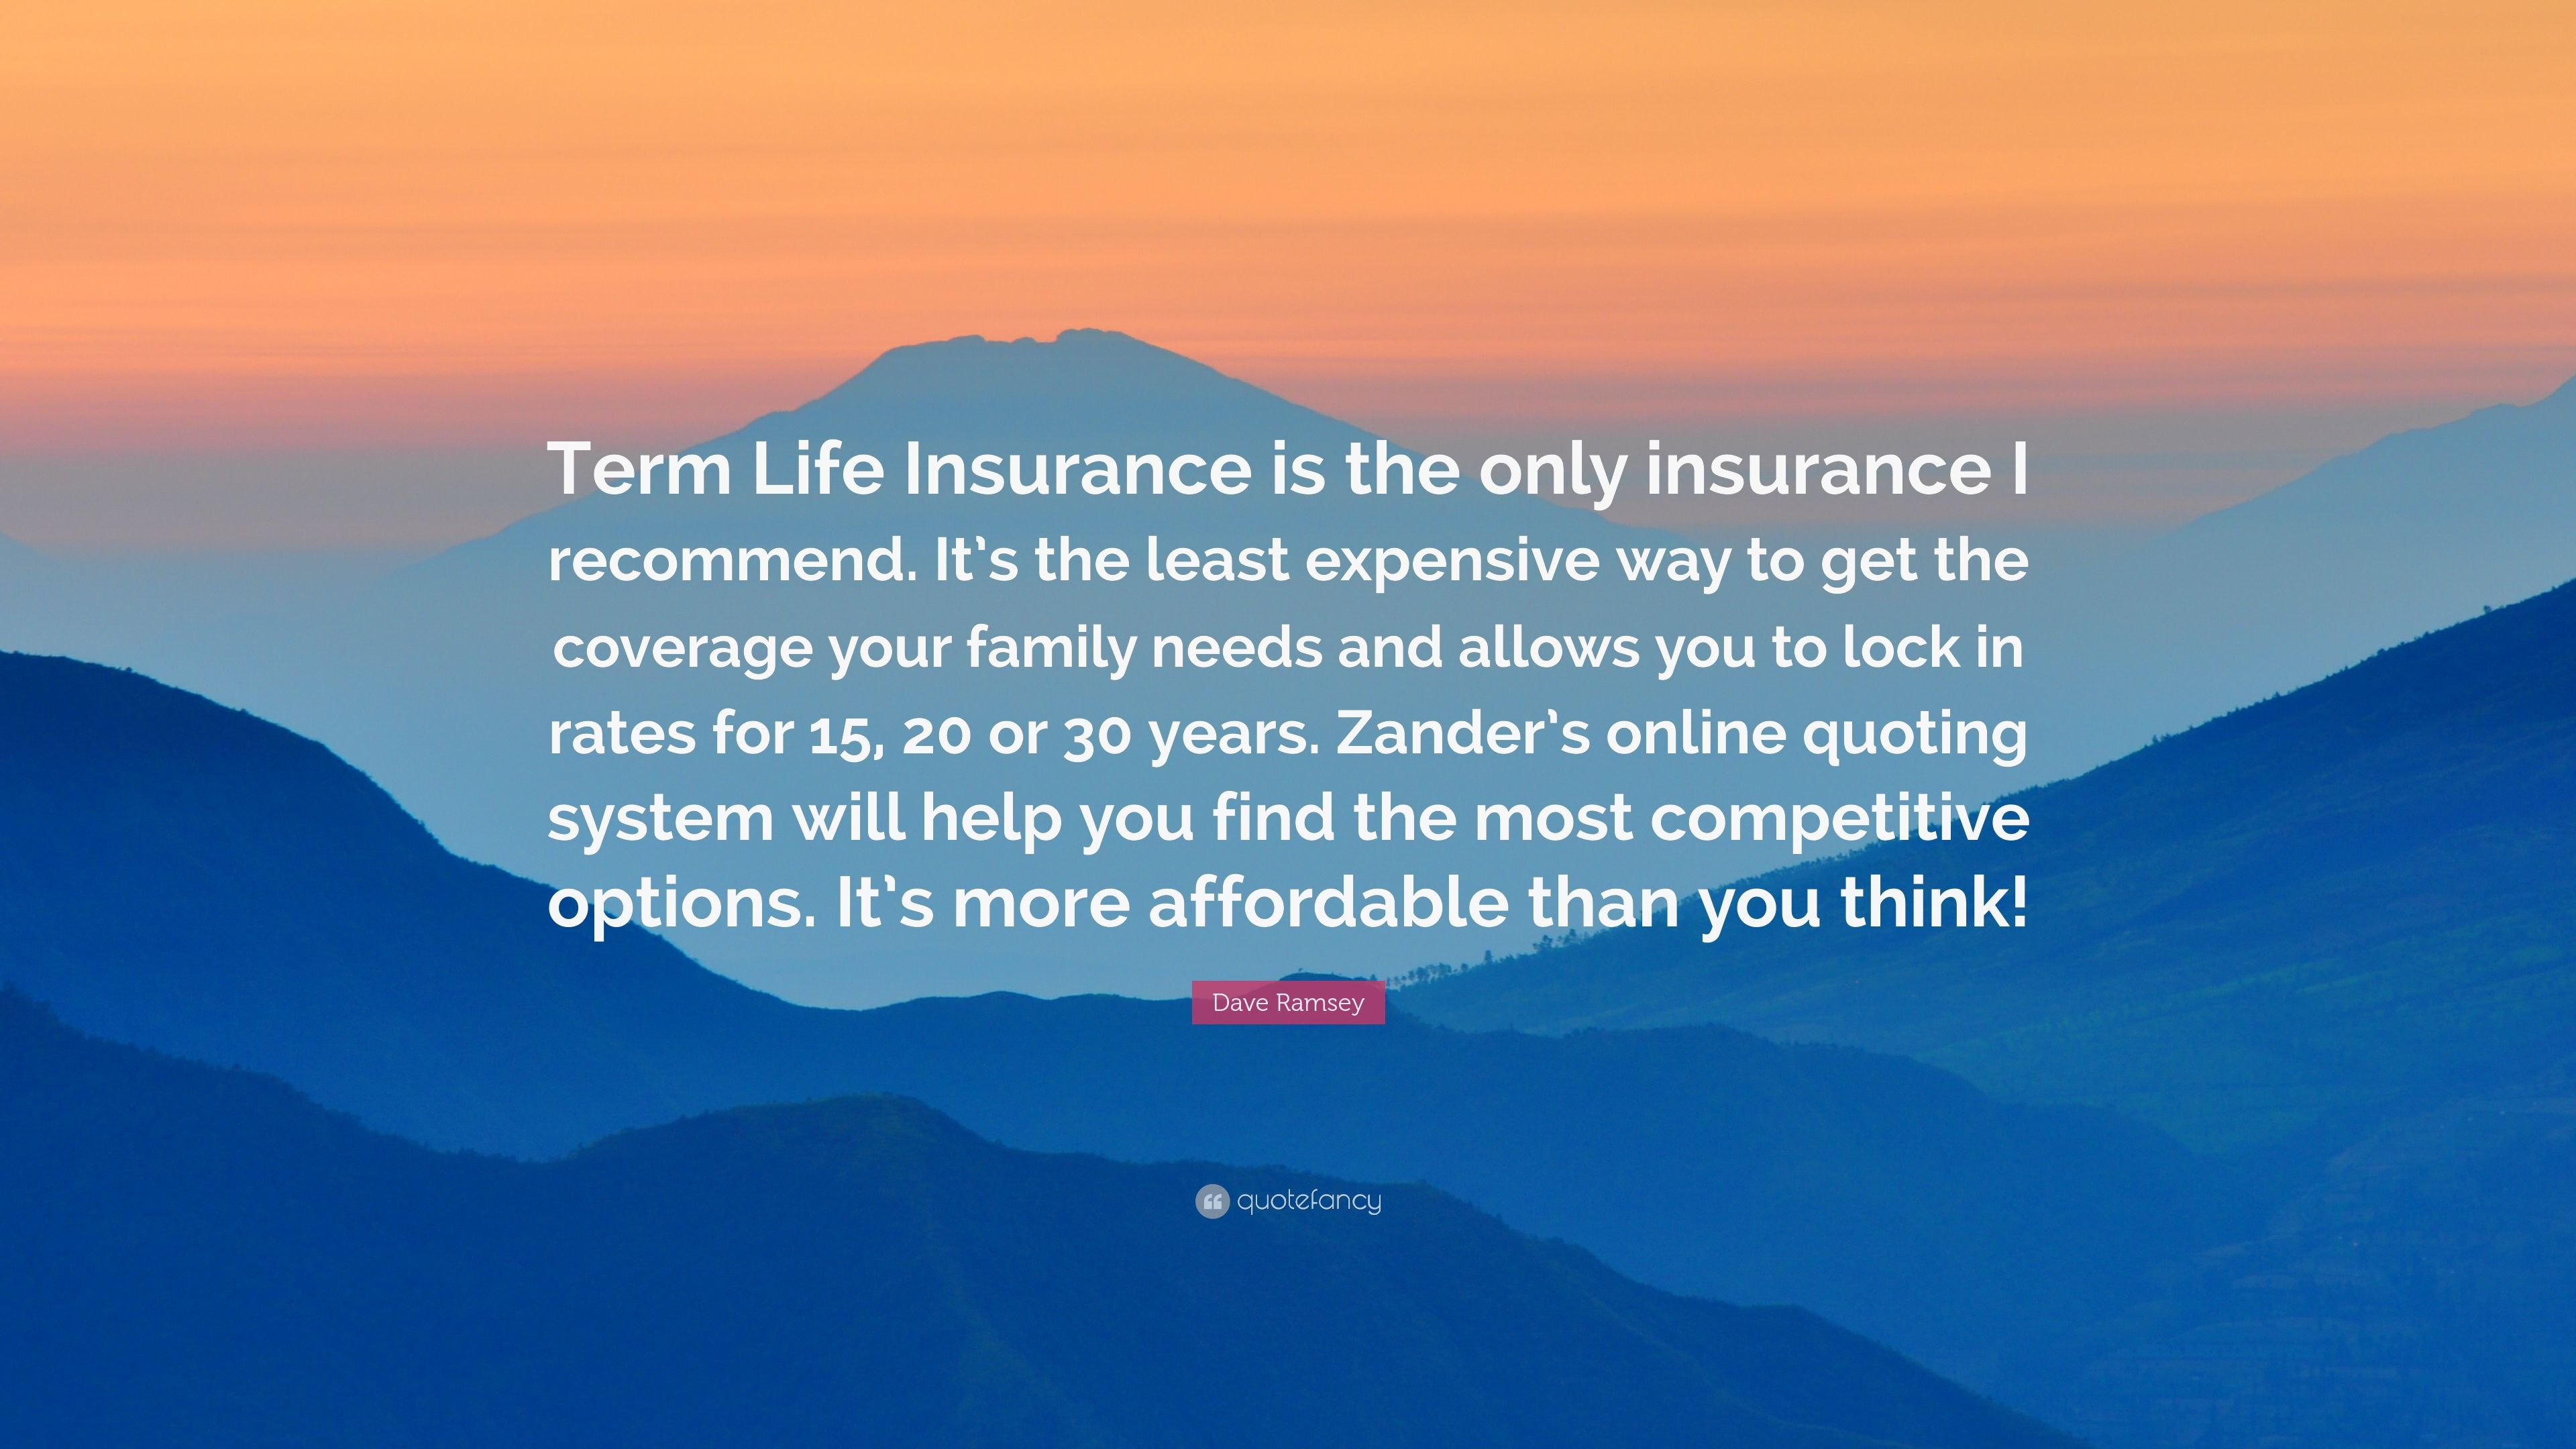 Insurance Life Quotes Term Life Insurance Quotes Dave Ramsey  44Billionlater